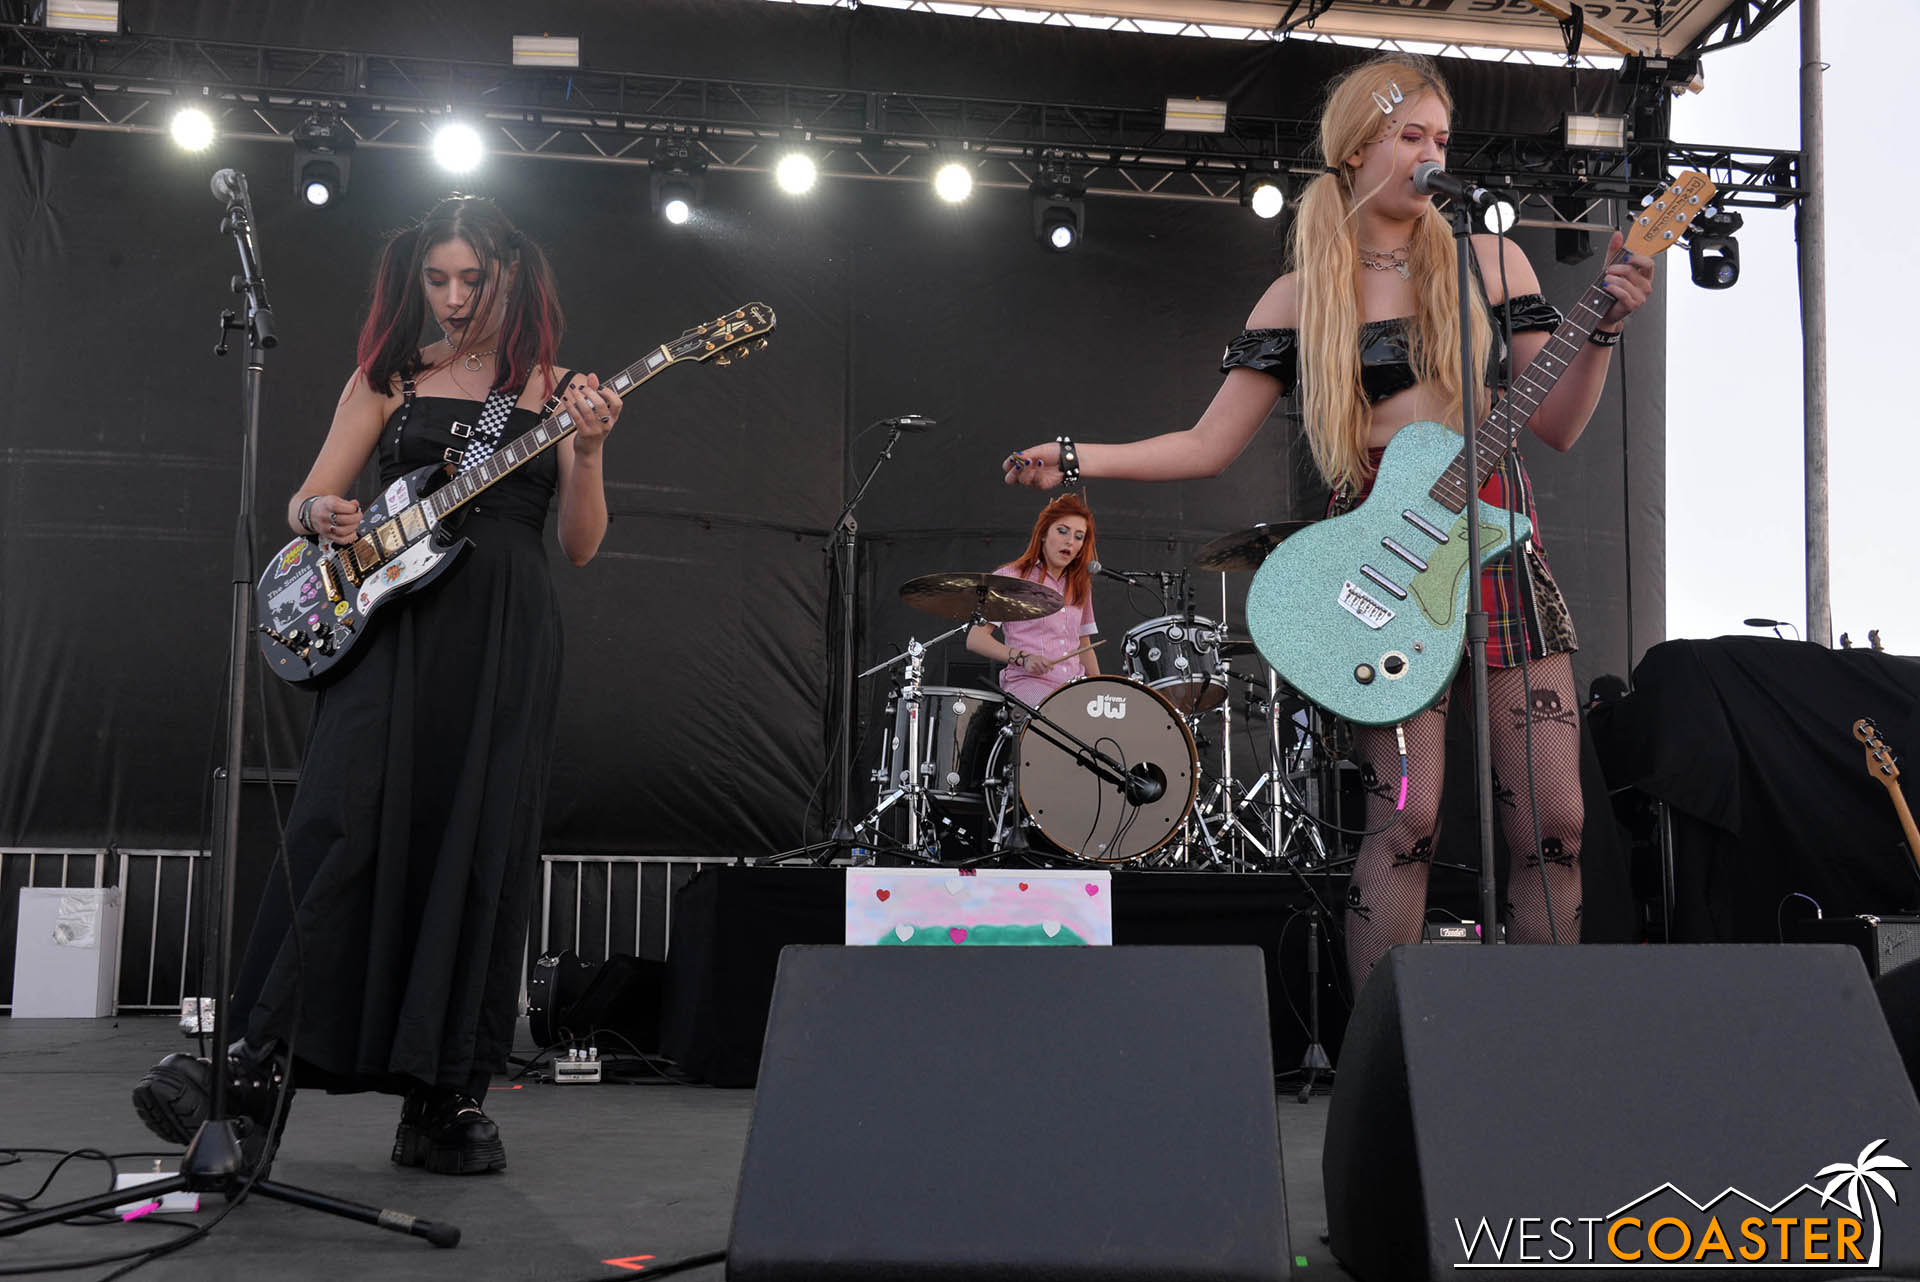 Aquadolls performing at GnarlyTown Festival.